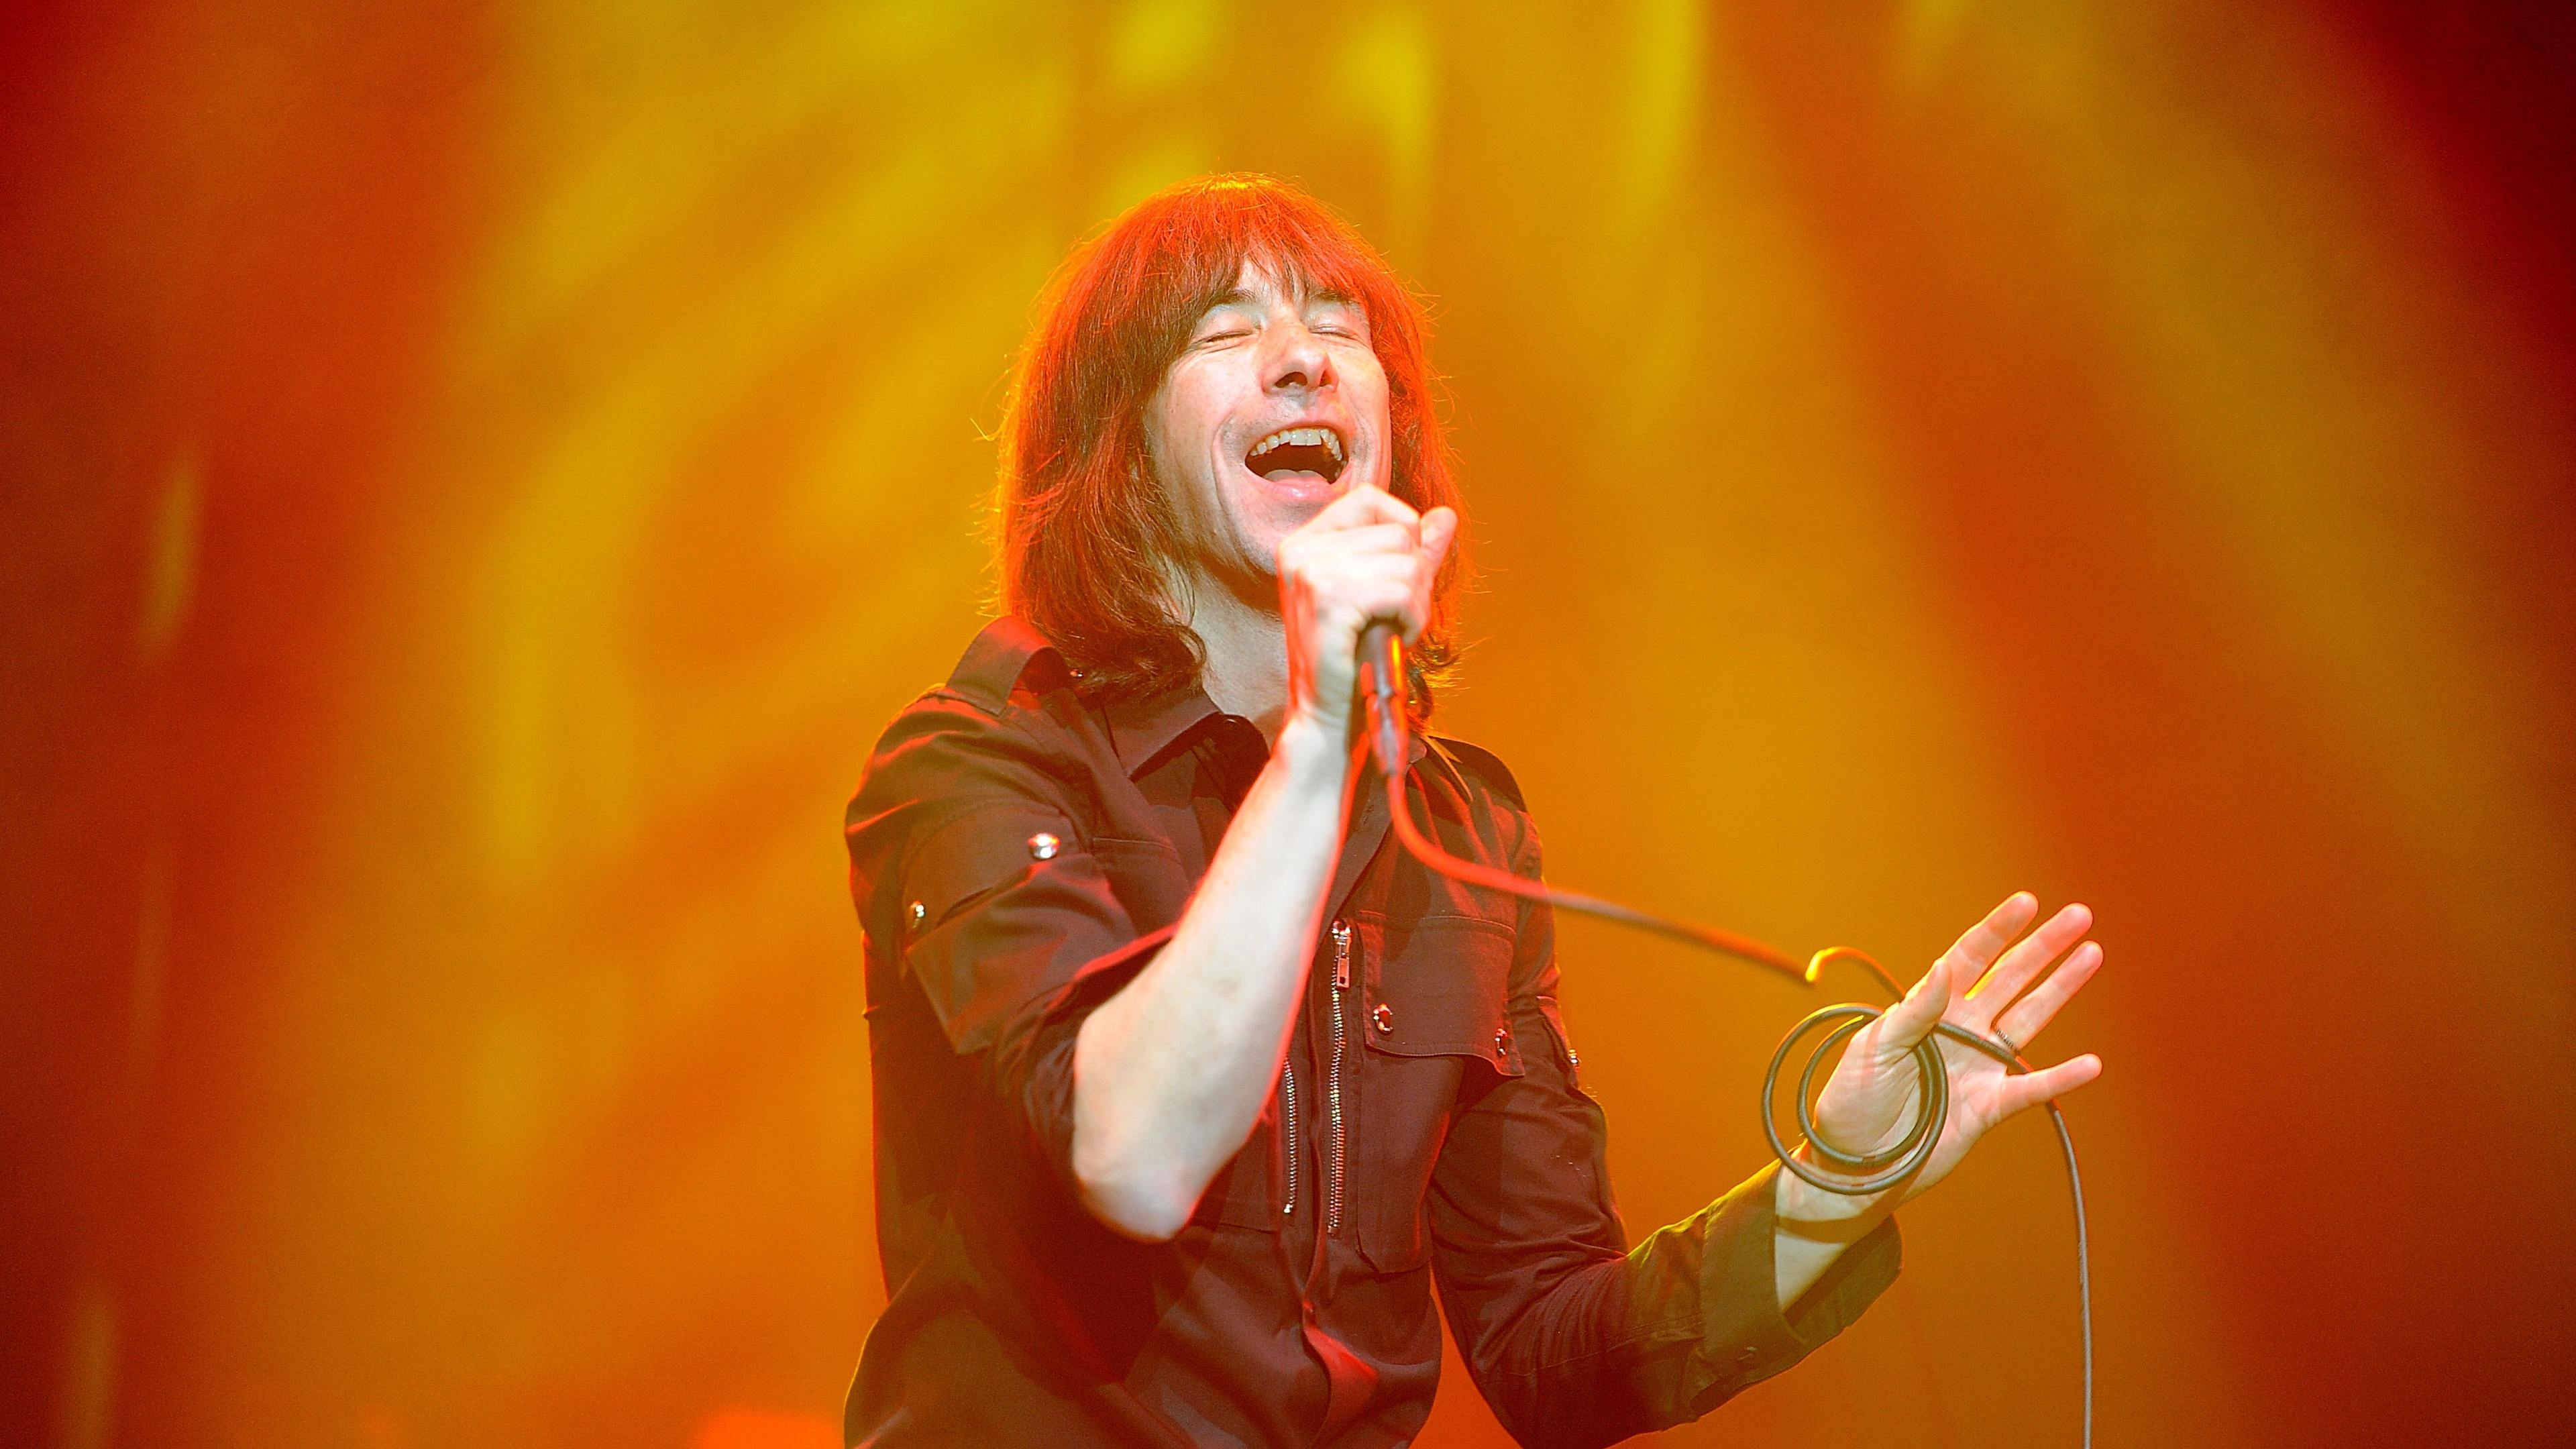 Primal Scream will play the rescheduled dates in 2022